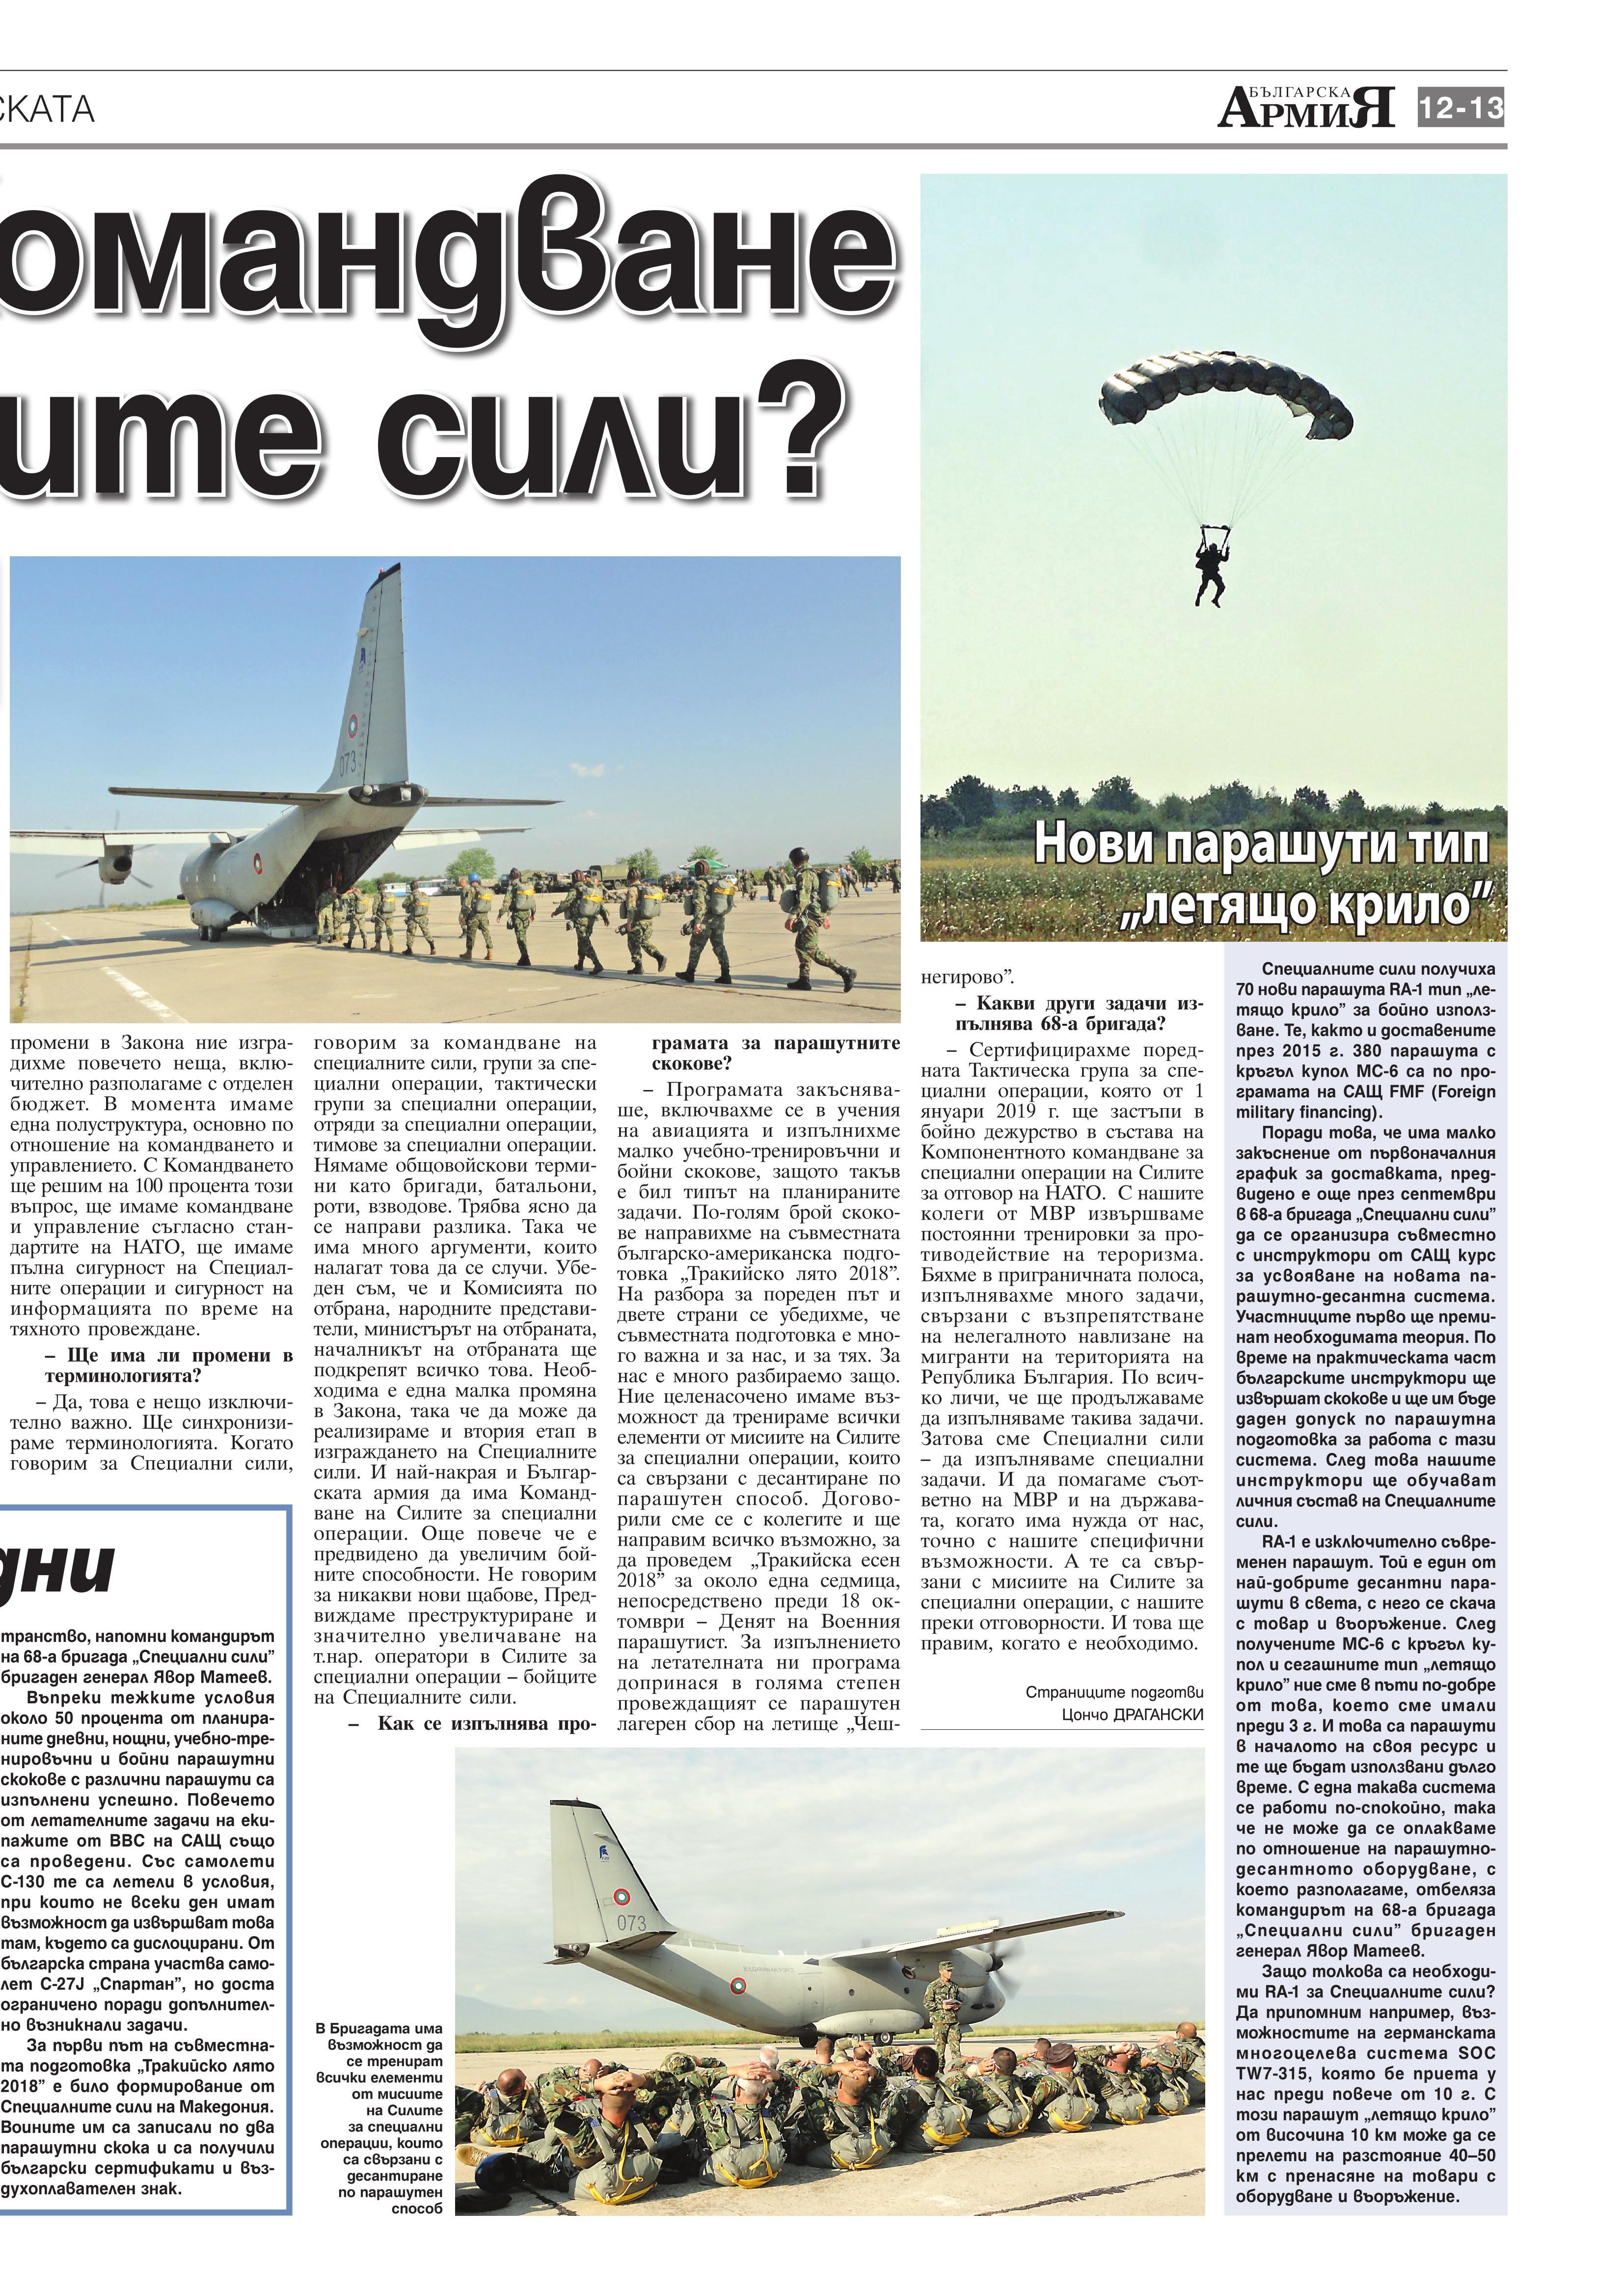 http://armymedia.bg/wp-content/uploads/2015/06/13.page1_-61.jpg